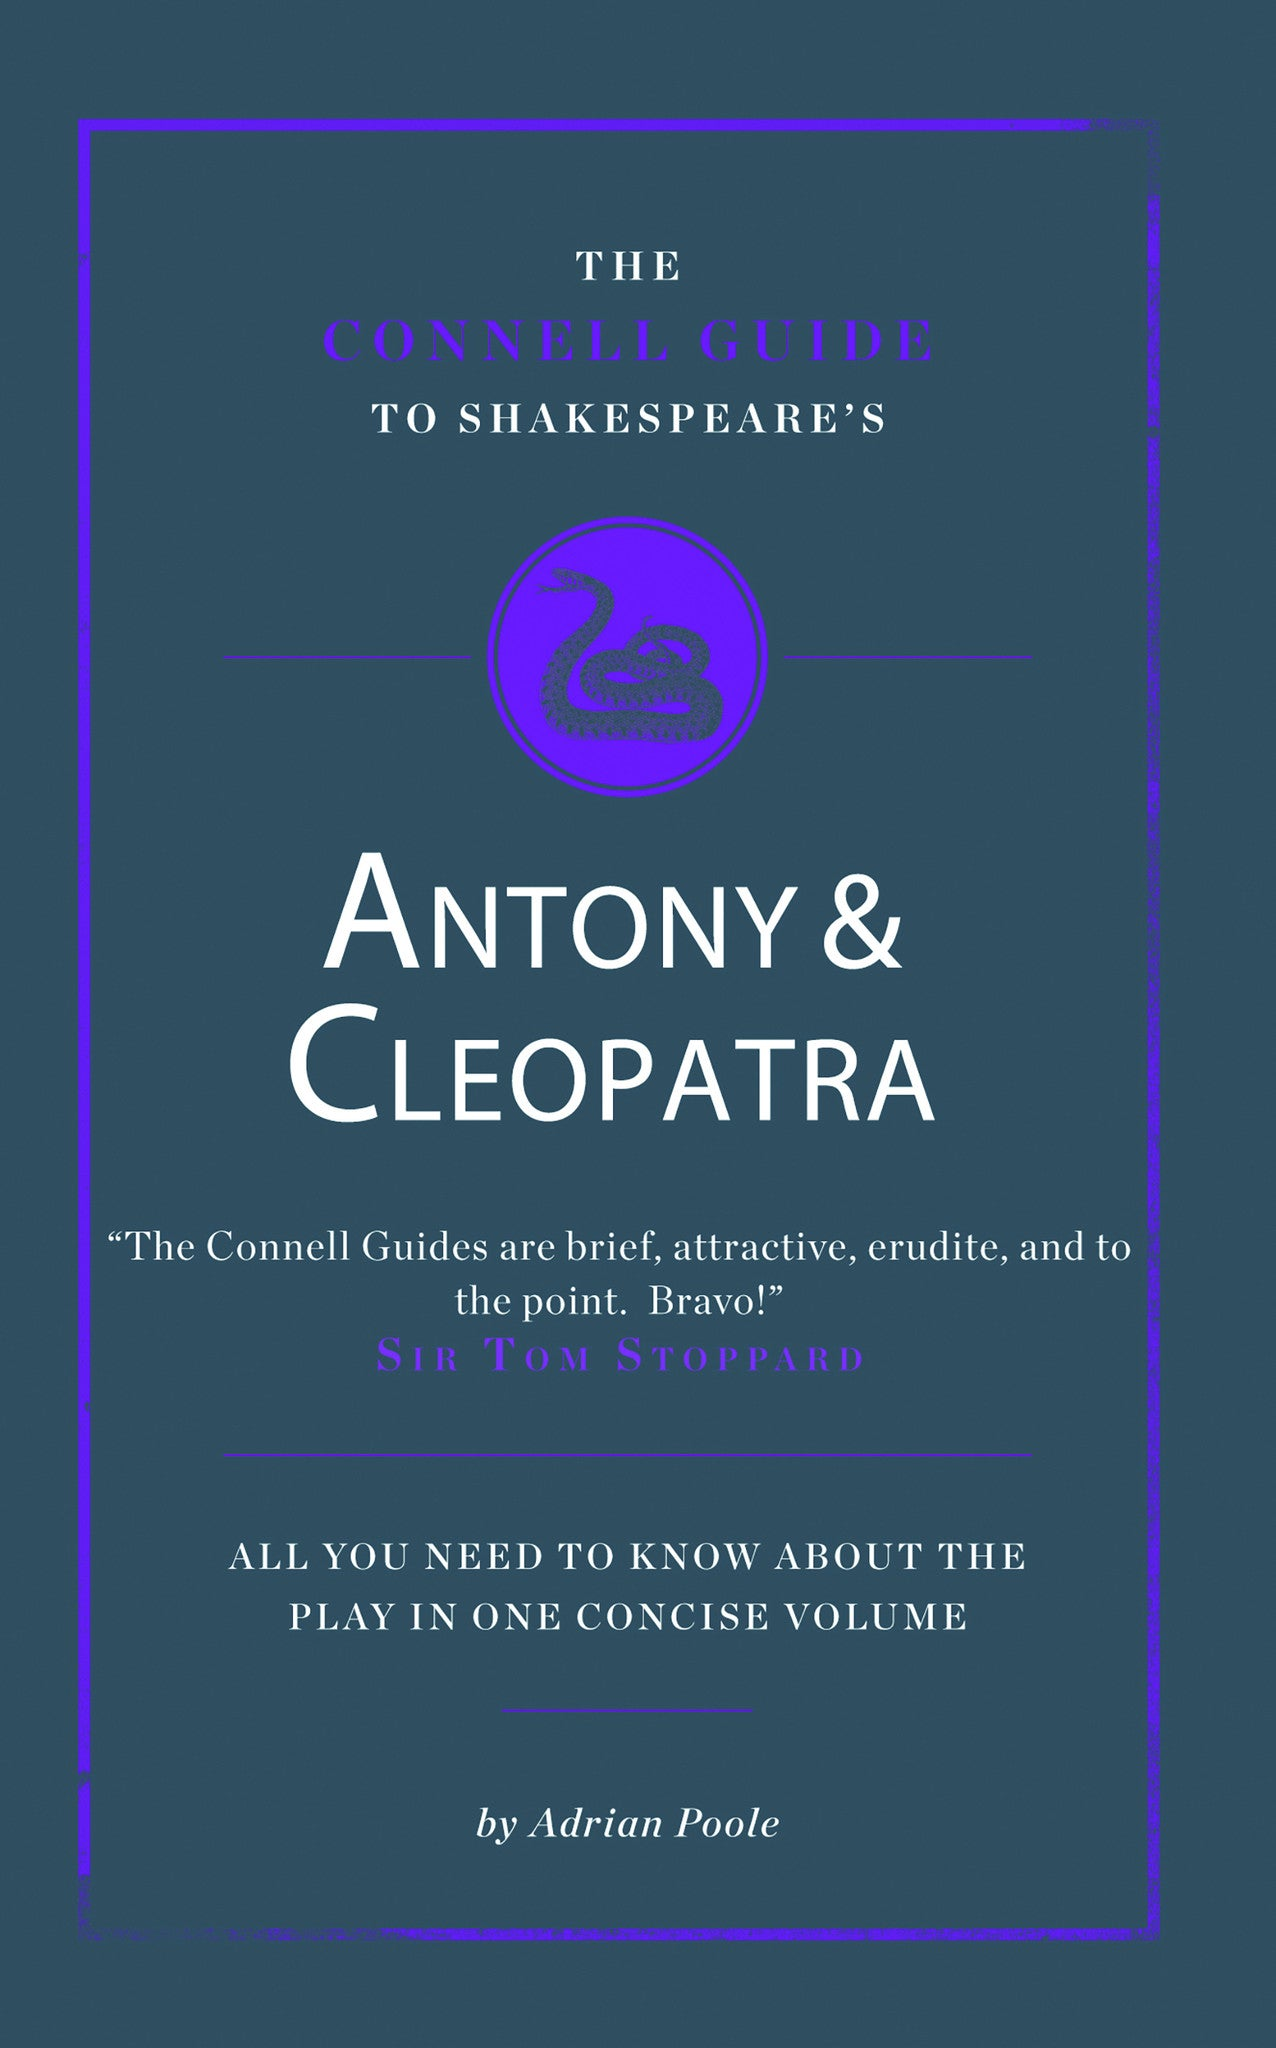 shakespeare s antony and cleopatra study guide connell guides shakespeare s antony and cleopatra study guide